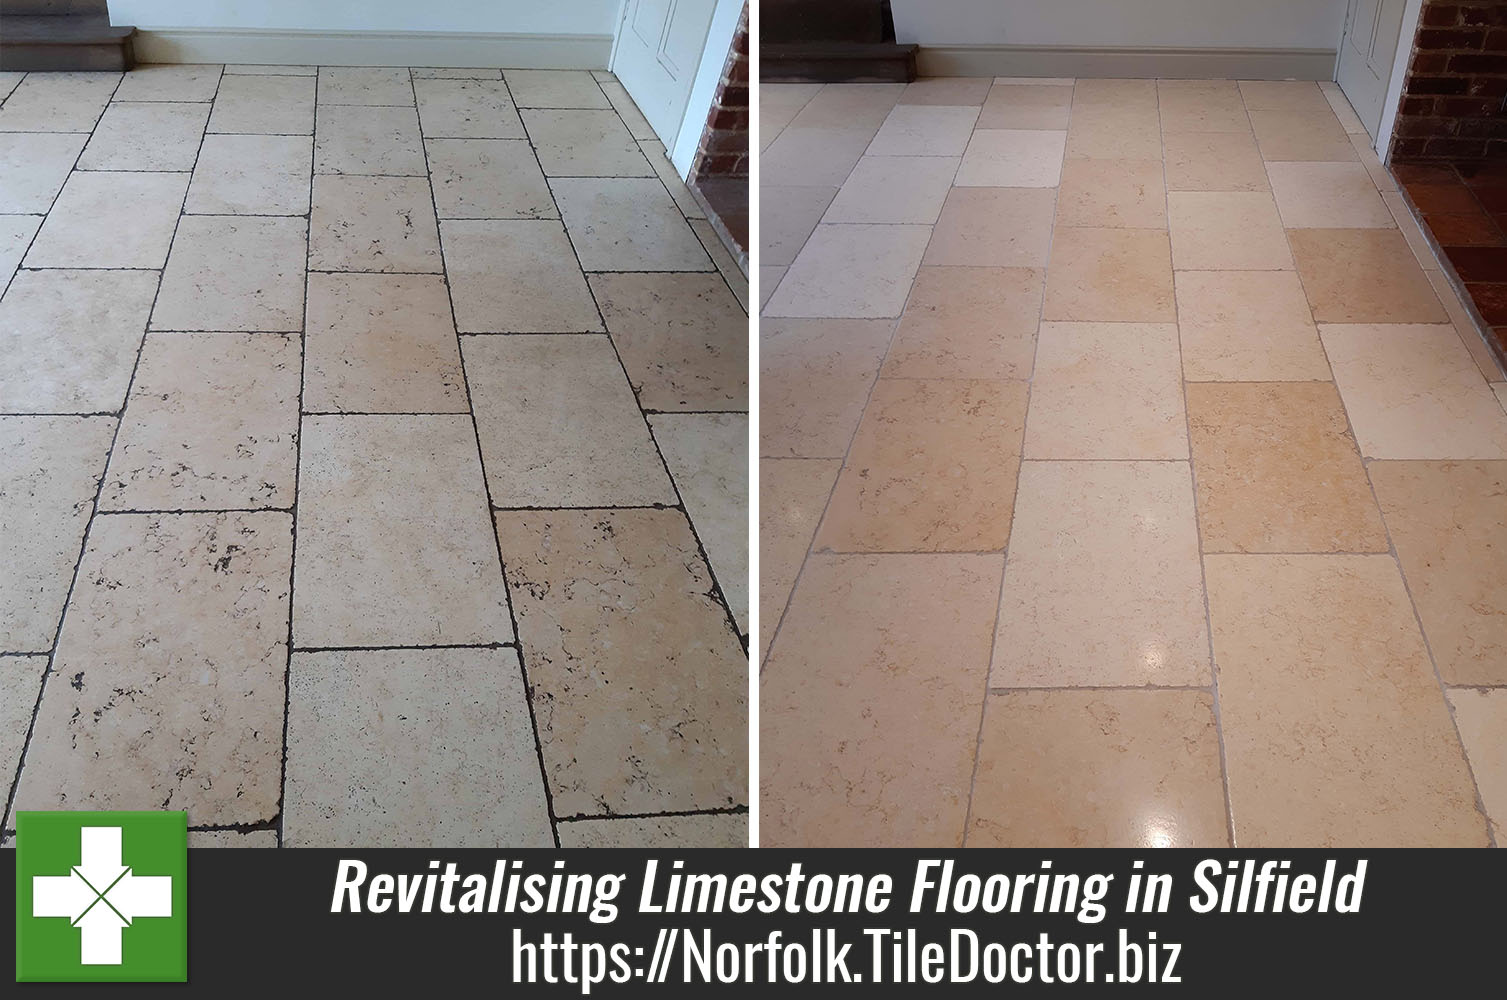 Limestone-Floor-Before-and-After-Restoration-Silfield